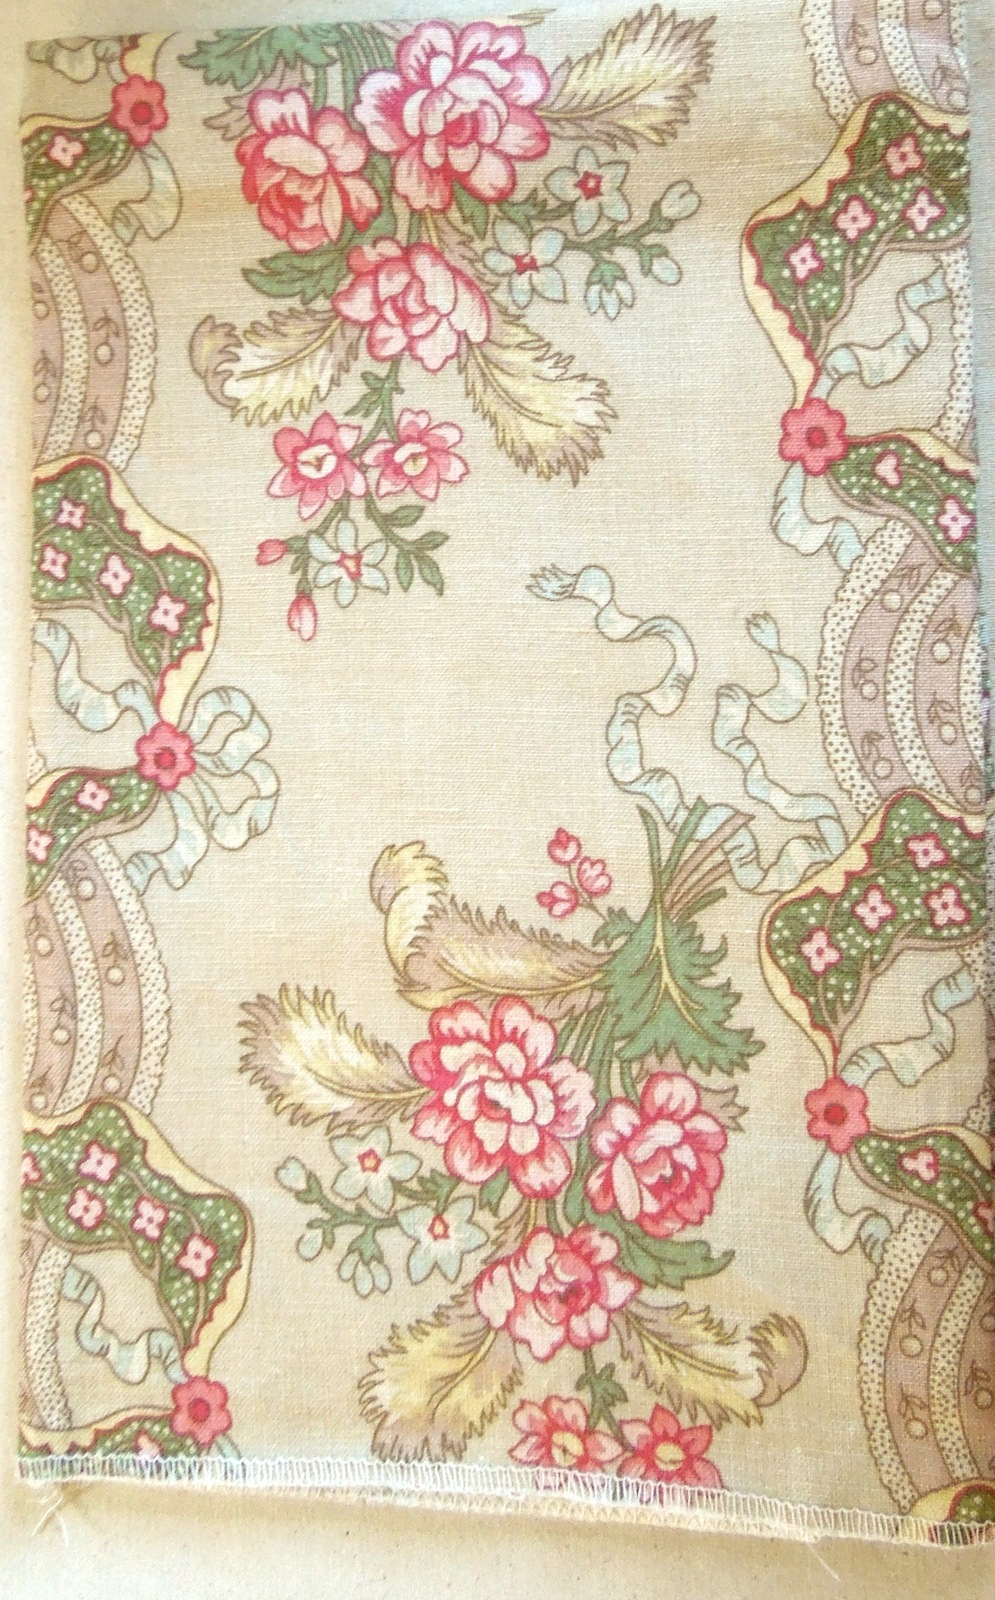 Apt bedrm drawer  3 27  square line fabric with finished edges muted antique floral colors linen  pink  blue  green 10 2 13 gw .74  5021